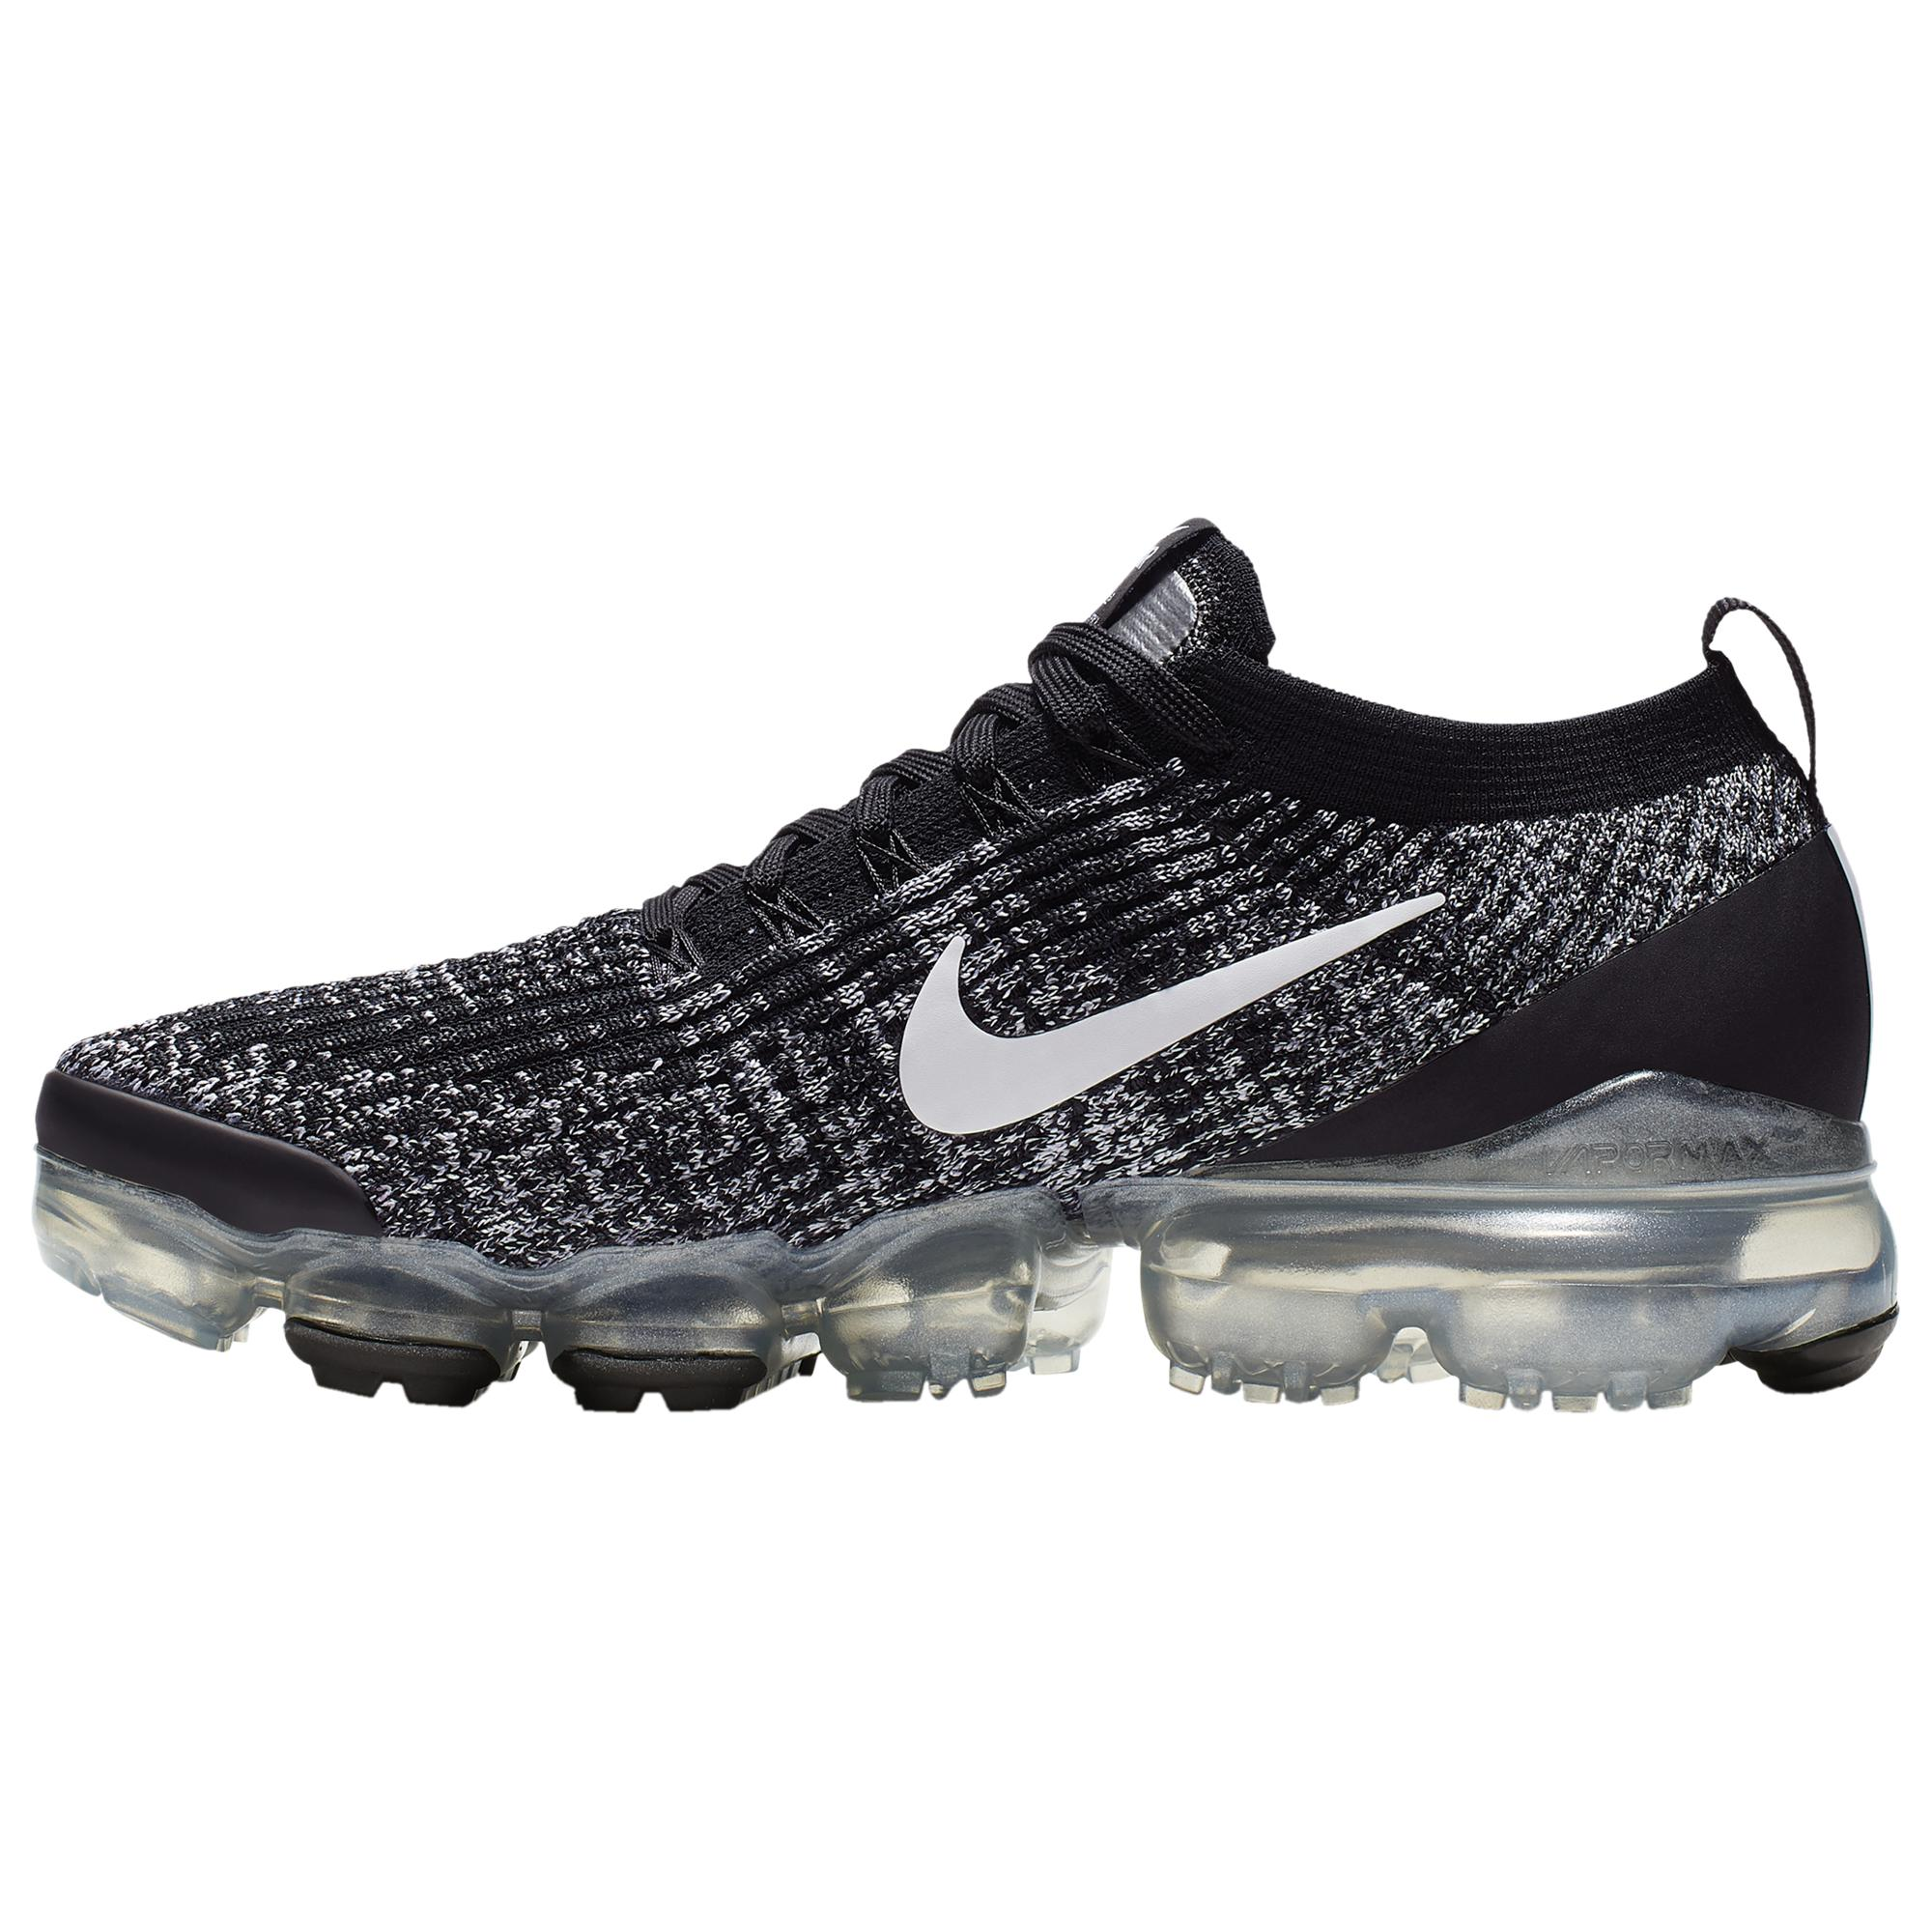 Nike Air Vapormax Flyknit 3 - Running Shoes in Black - Save 45% - Lyst